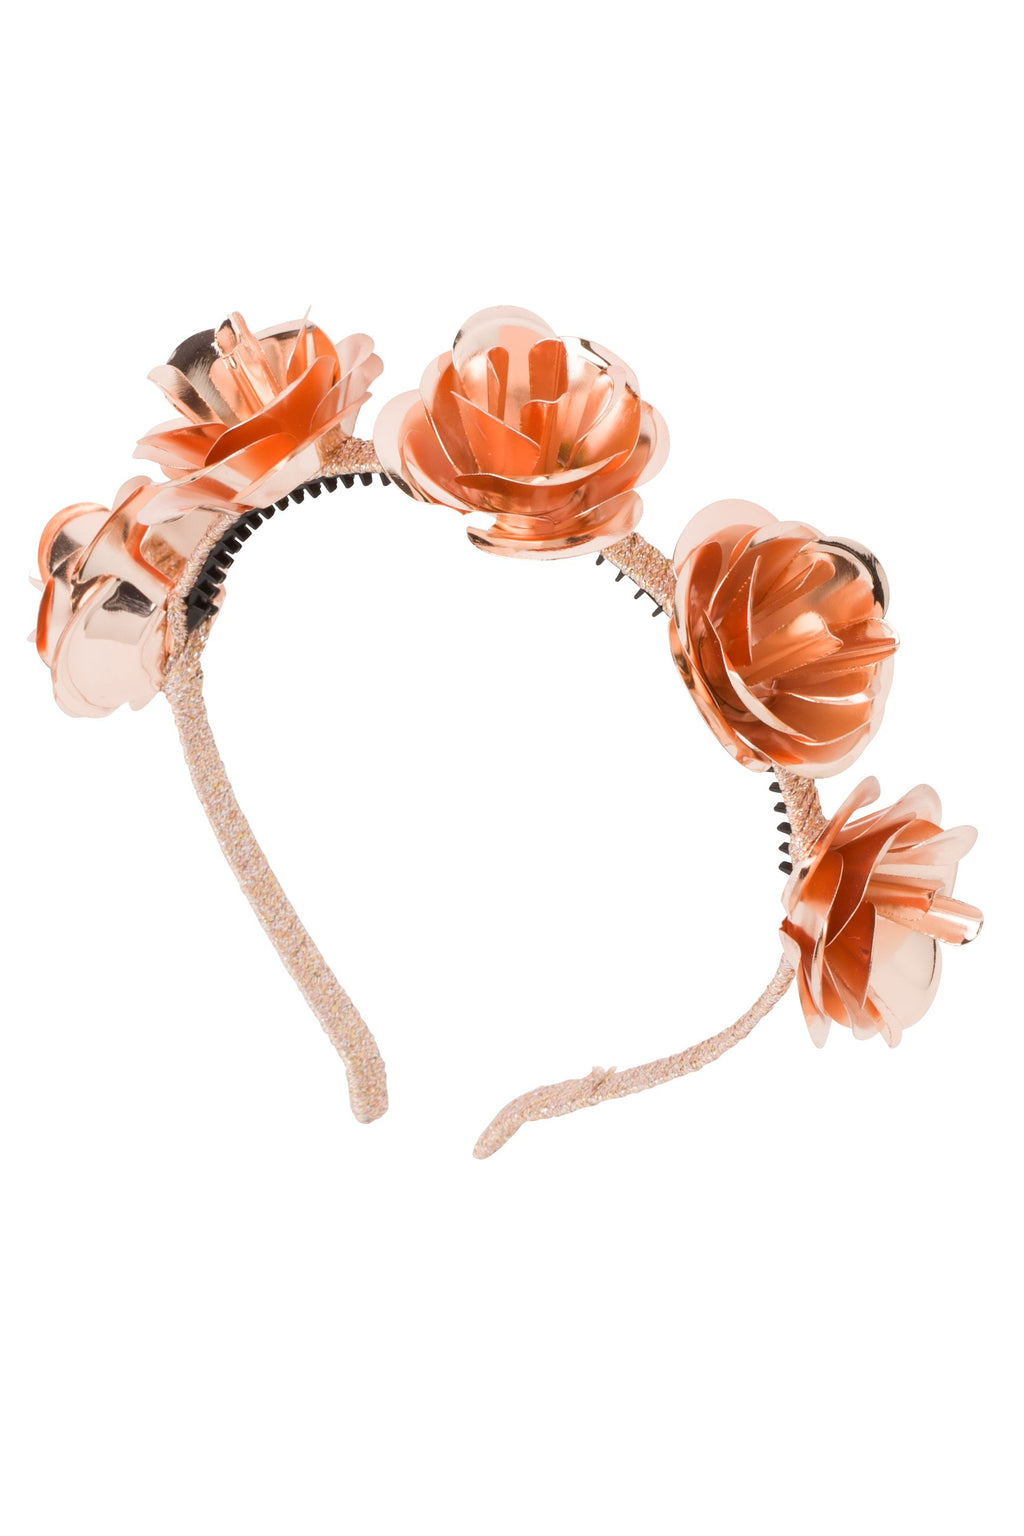 Lonely Roses Headband - Rose Gold - PROJECT 6, modest fashion